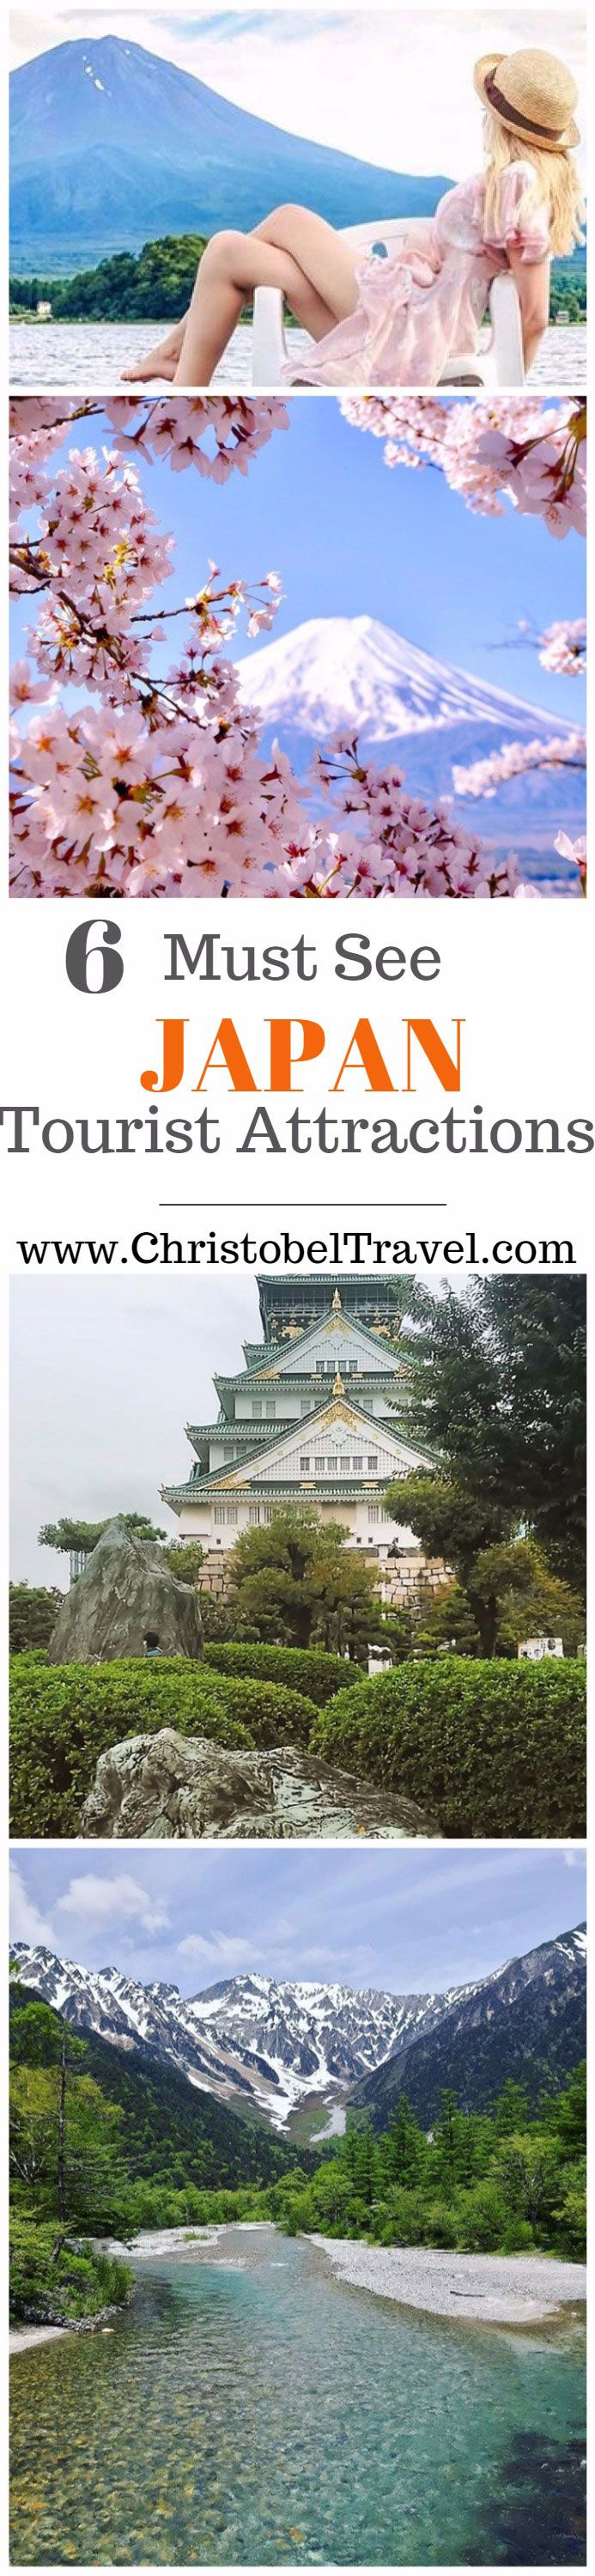 6 Must See Japan Tourist Attractions; Bucket list, Places to see and things to do in Japan include Mount Fuji with cherry blossoms, Imperial Palace Tokyo, Japanese Alps and Chubu-Sangaku National Park, Osaka Castle, Hiroshima Peace Memorial, Fukuoka Castle, its nature & landscape, mountains, see culture - Travel tips and guide on travel photography and your vacation #christobeltravel #japan